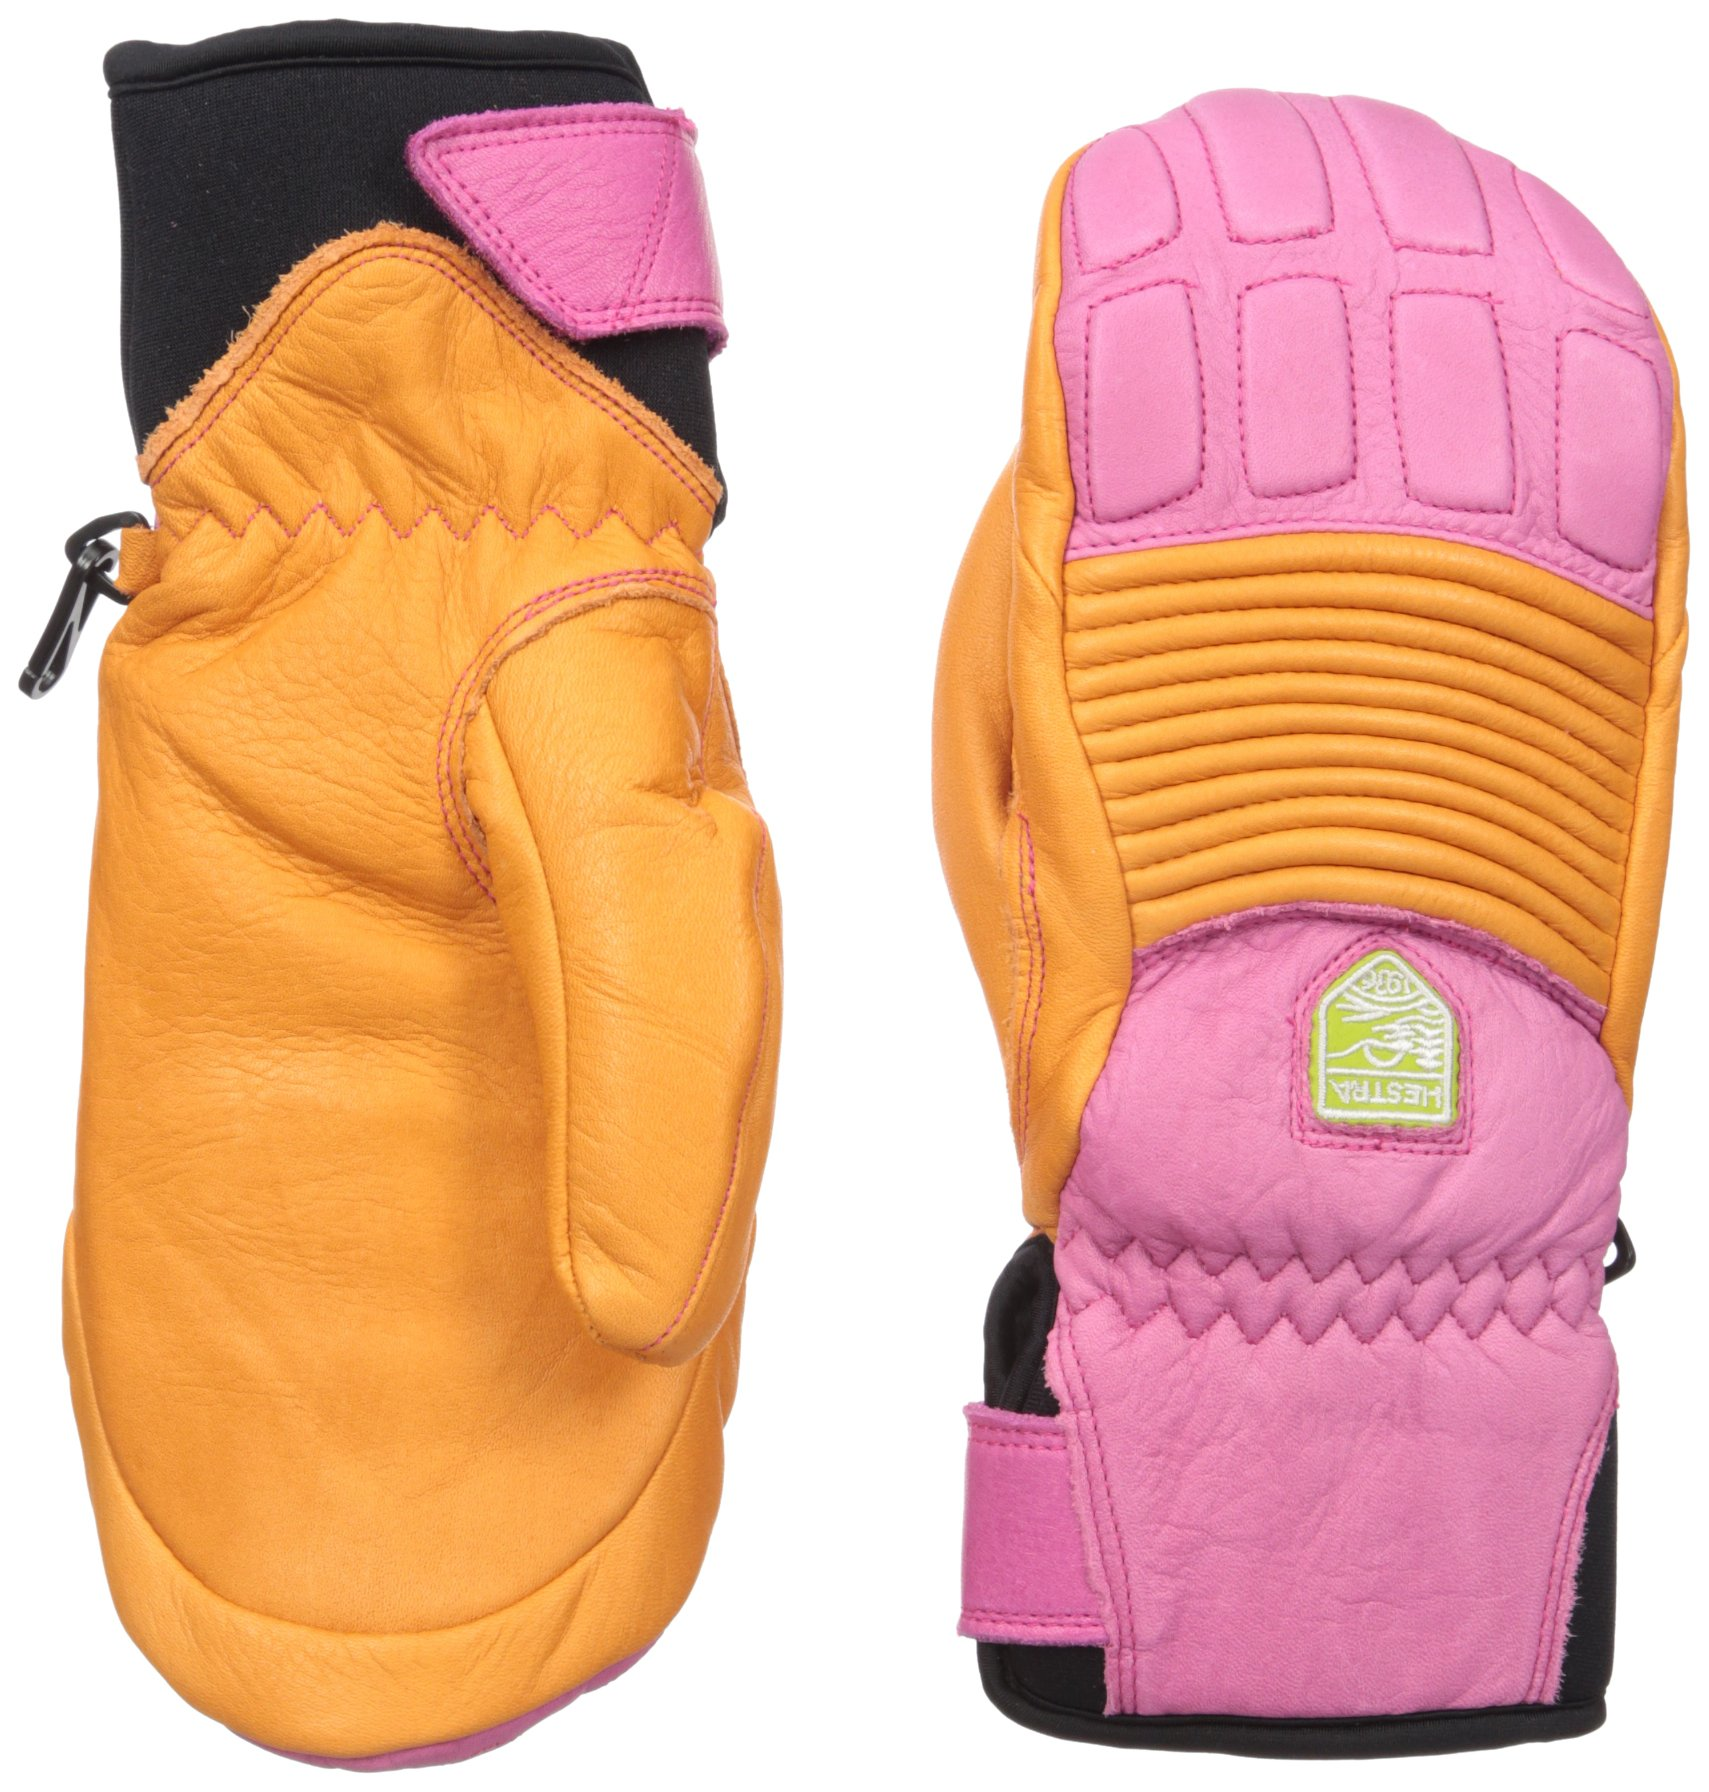 Hestra Women's Fall Line Short Leather Ski and Ride Mitten,Orange/Cerise,7 by Hestra